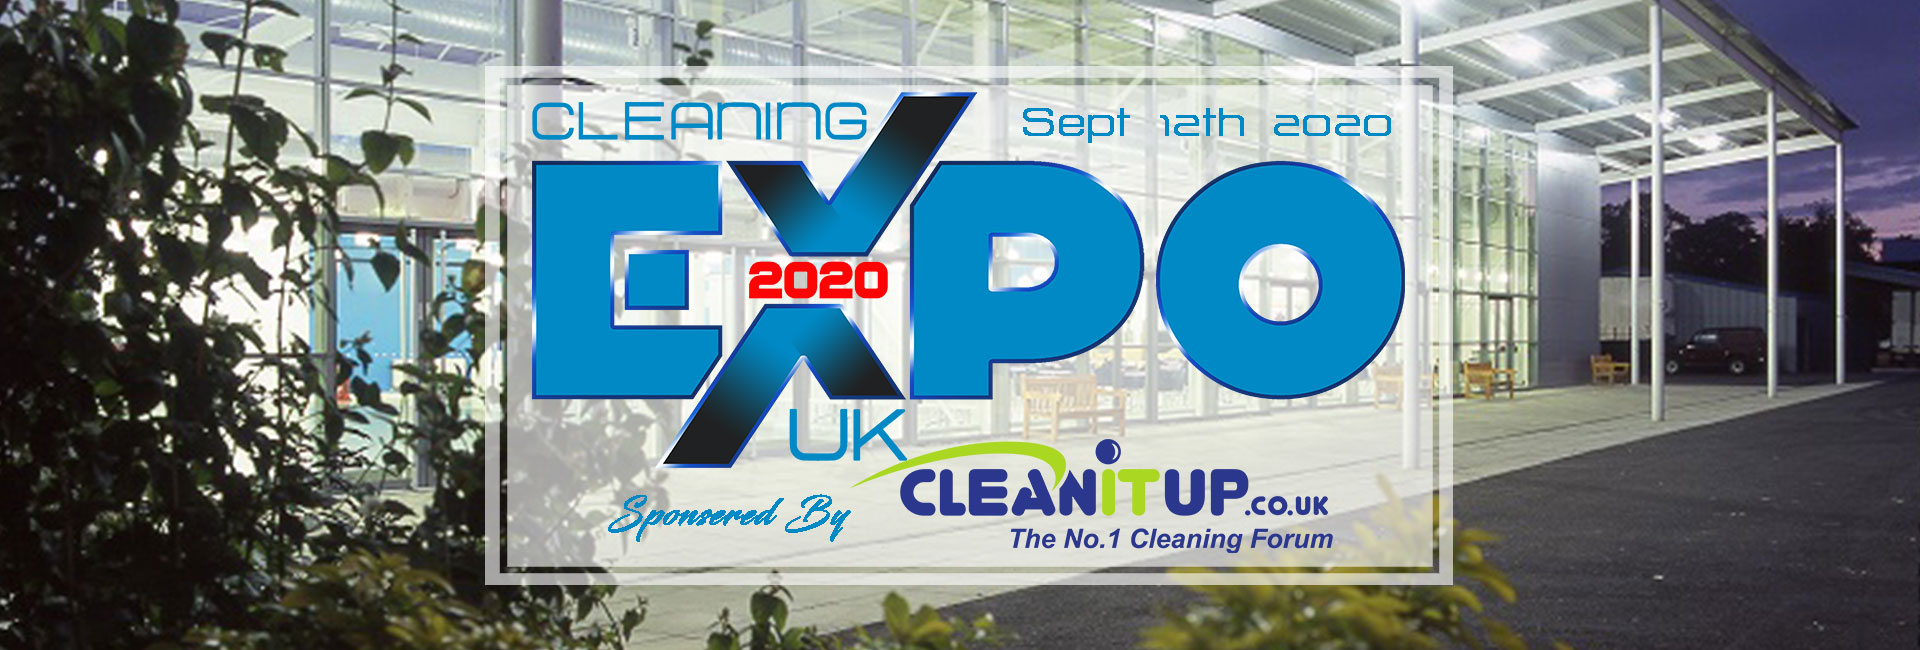 naec stoneleigh cleaning expo 2020 ciu